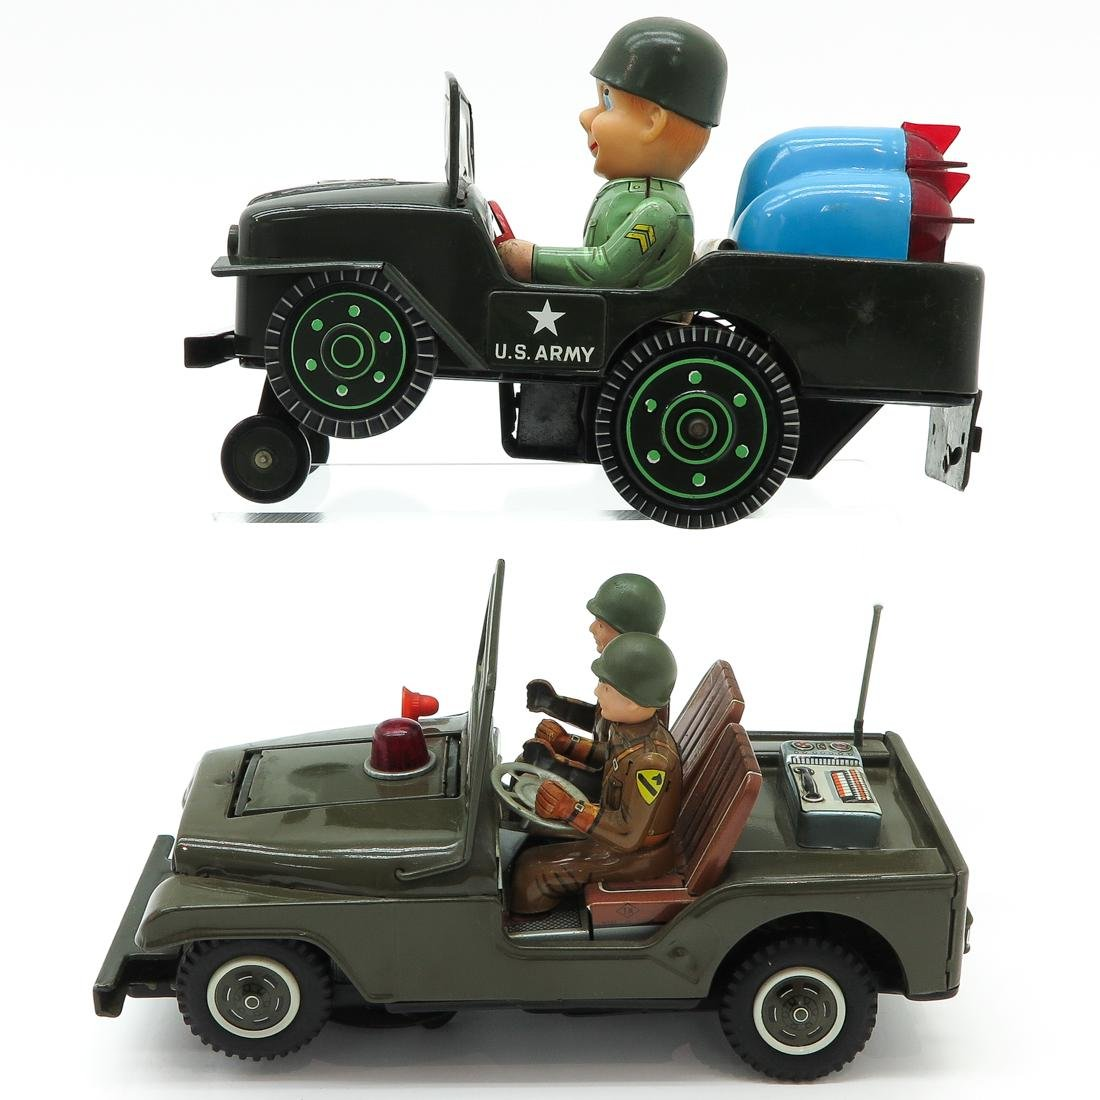 Lot of 2 Vintage Toy Military Vehicles